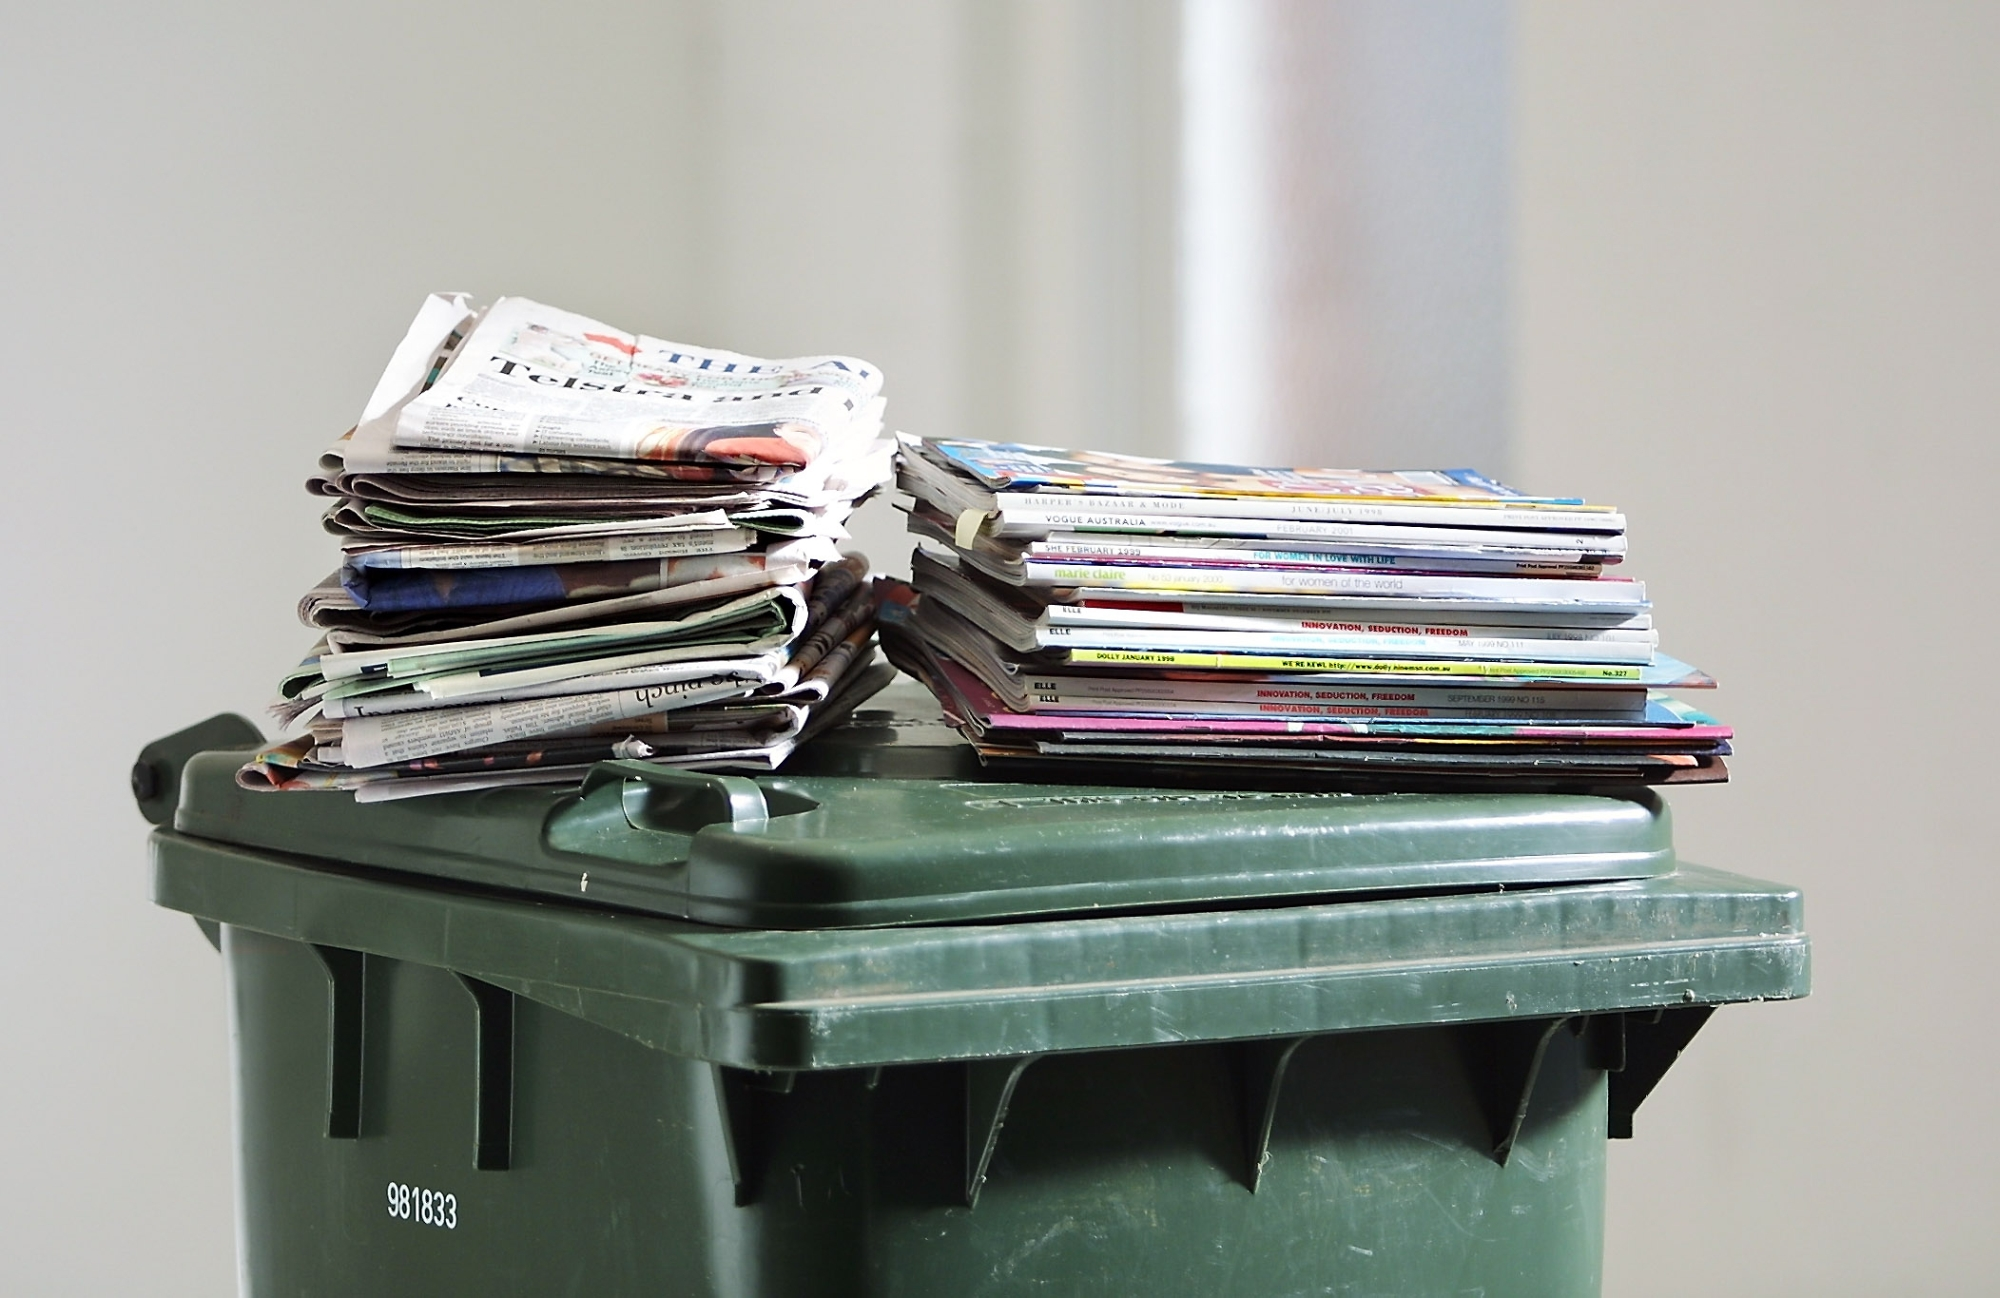 The City of Stirling is to review its bin storage policy.